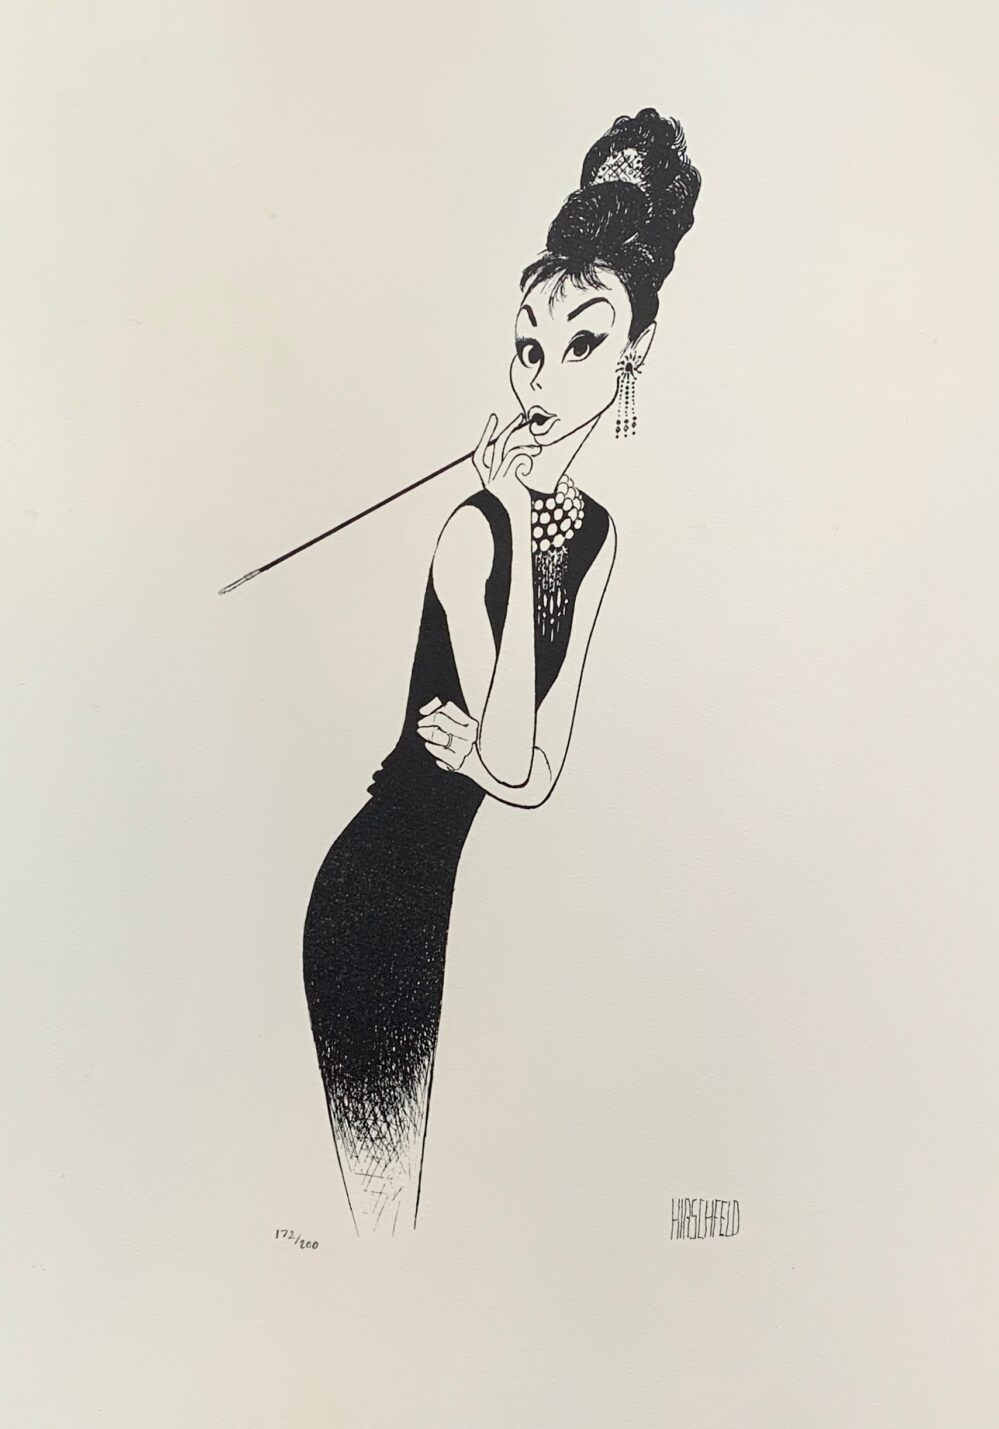 AL HIRSCHFELD AUDREY HEPBURN Facsimile Signed Limited Edition Lithograph